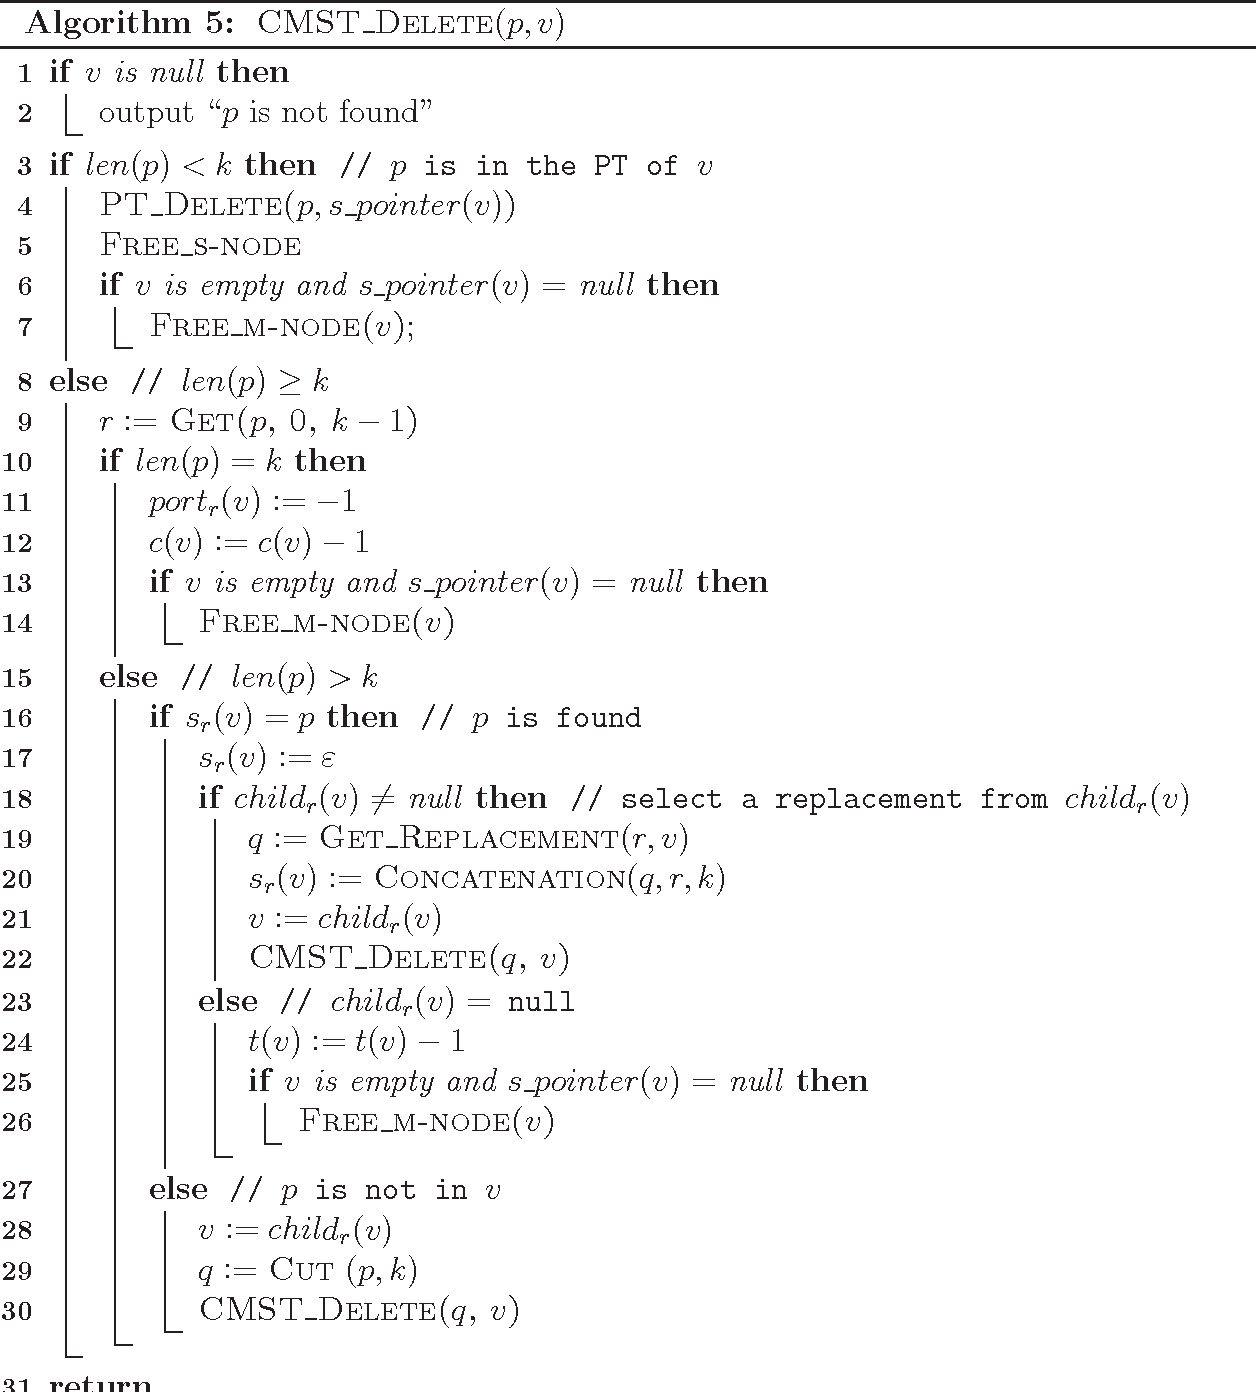 A Classified Multisuffix Trie for IP Lookup and Update